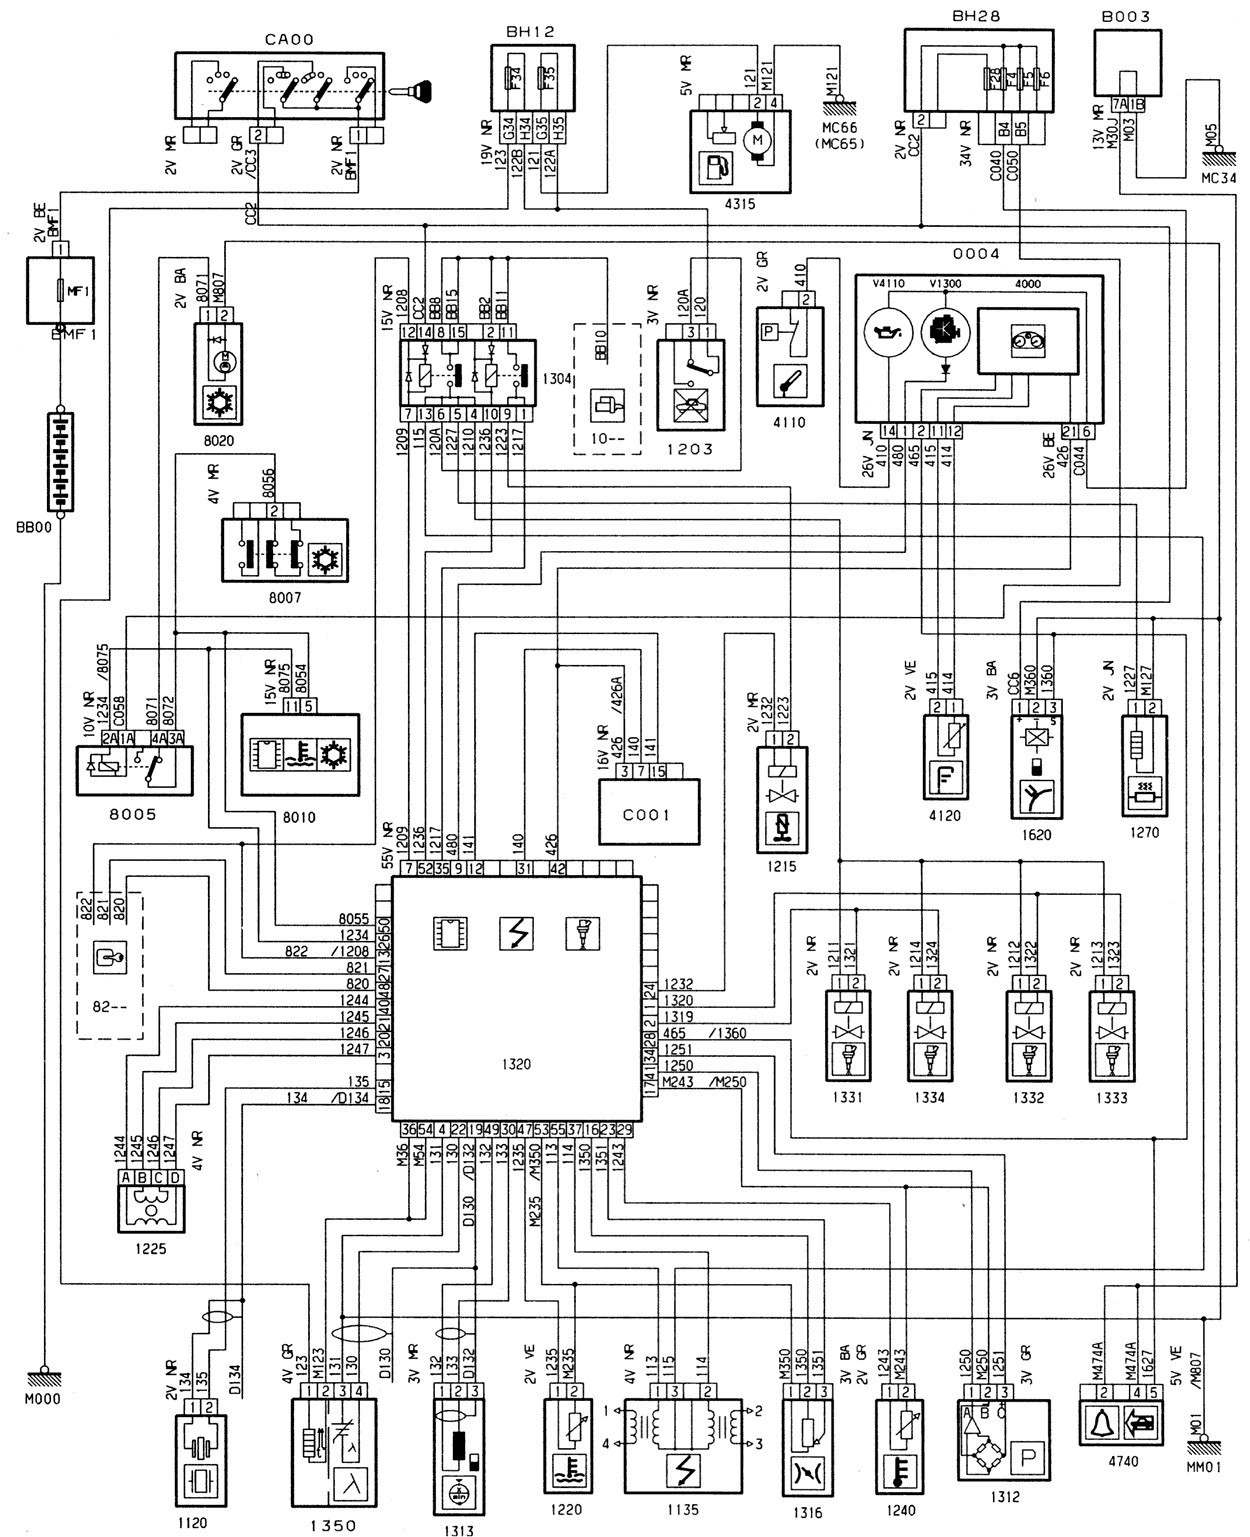 peugeot 206 engine diagram wiring diagram peugeot 206